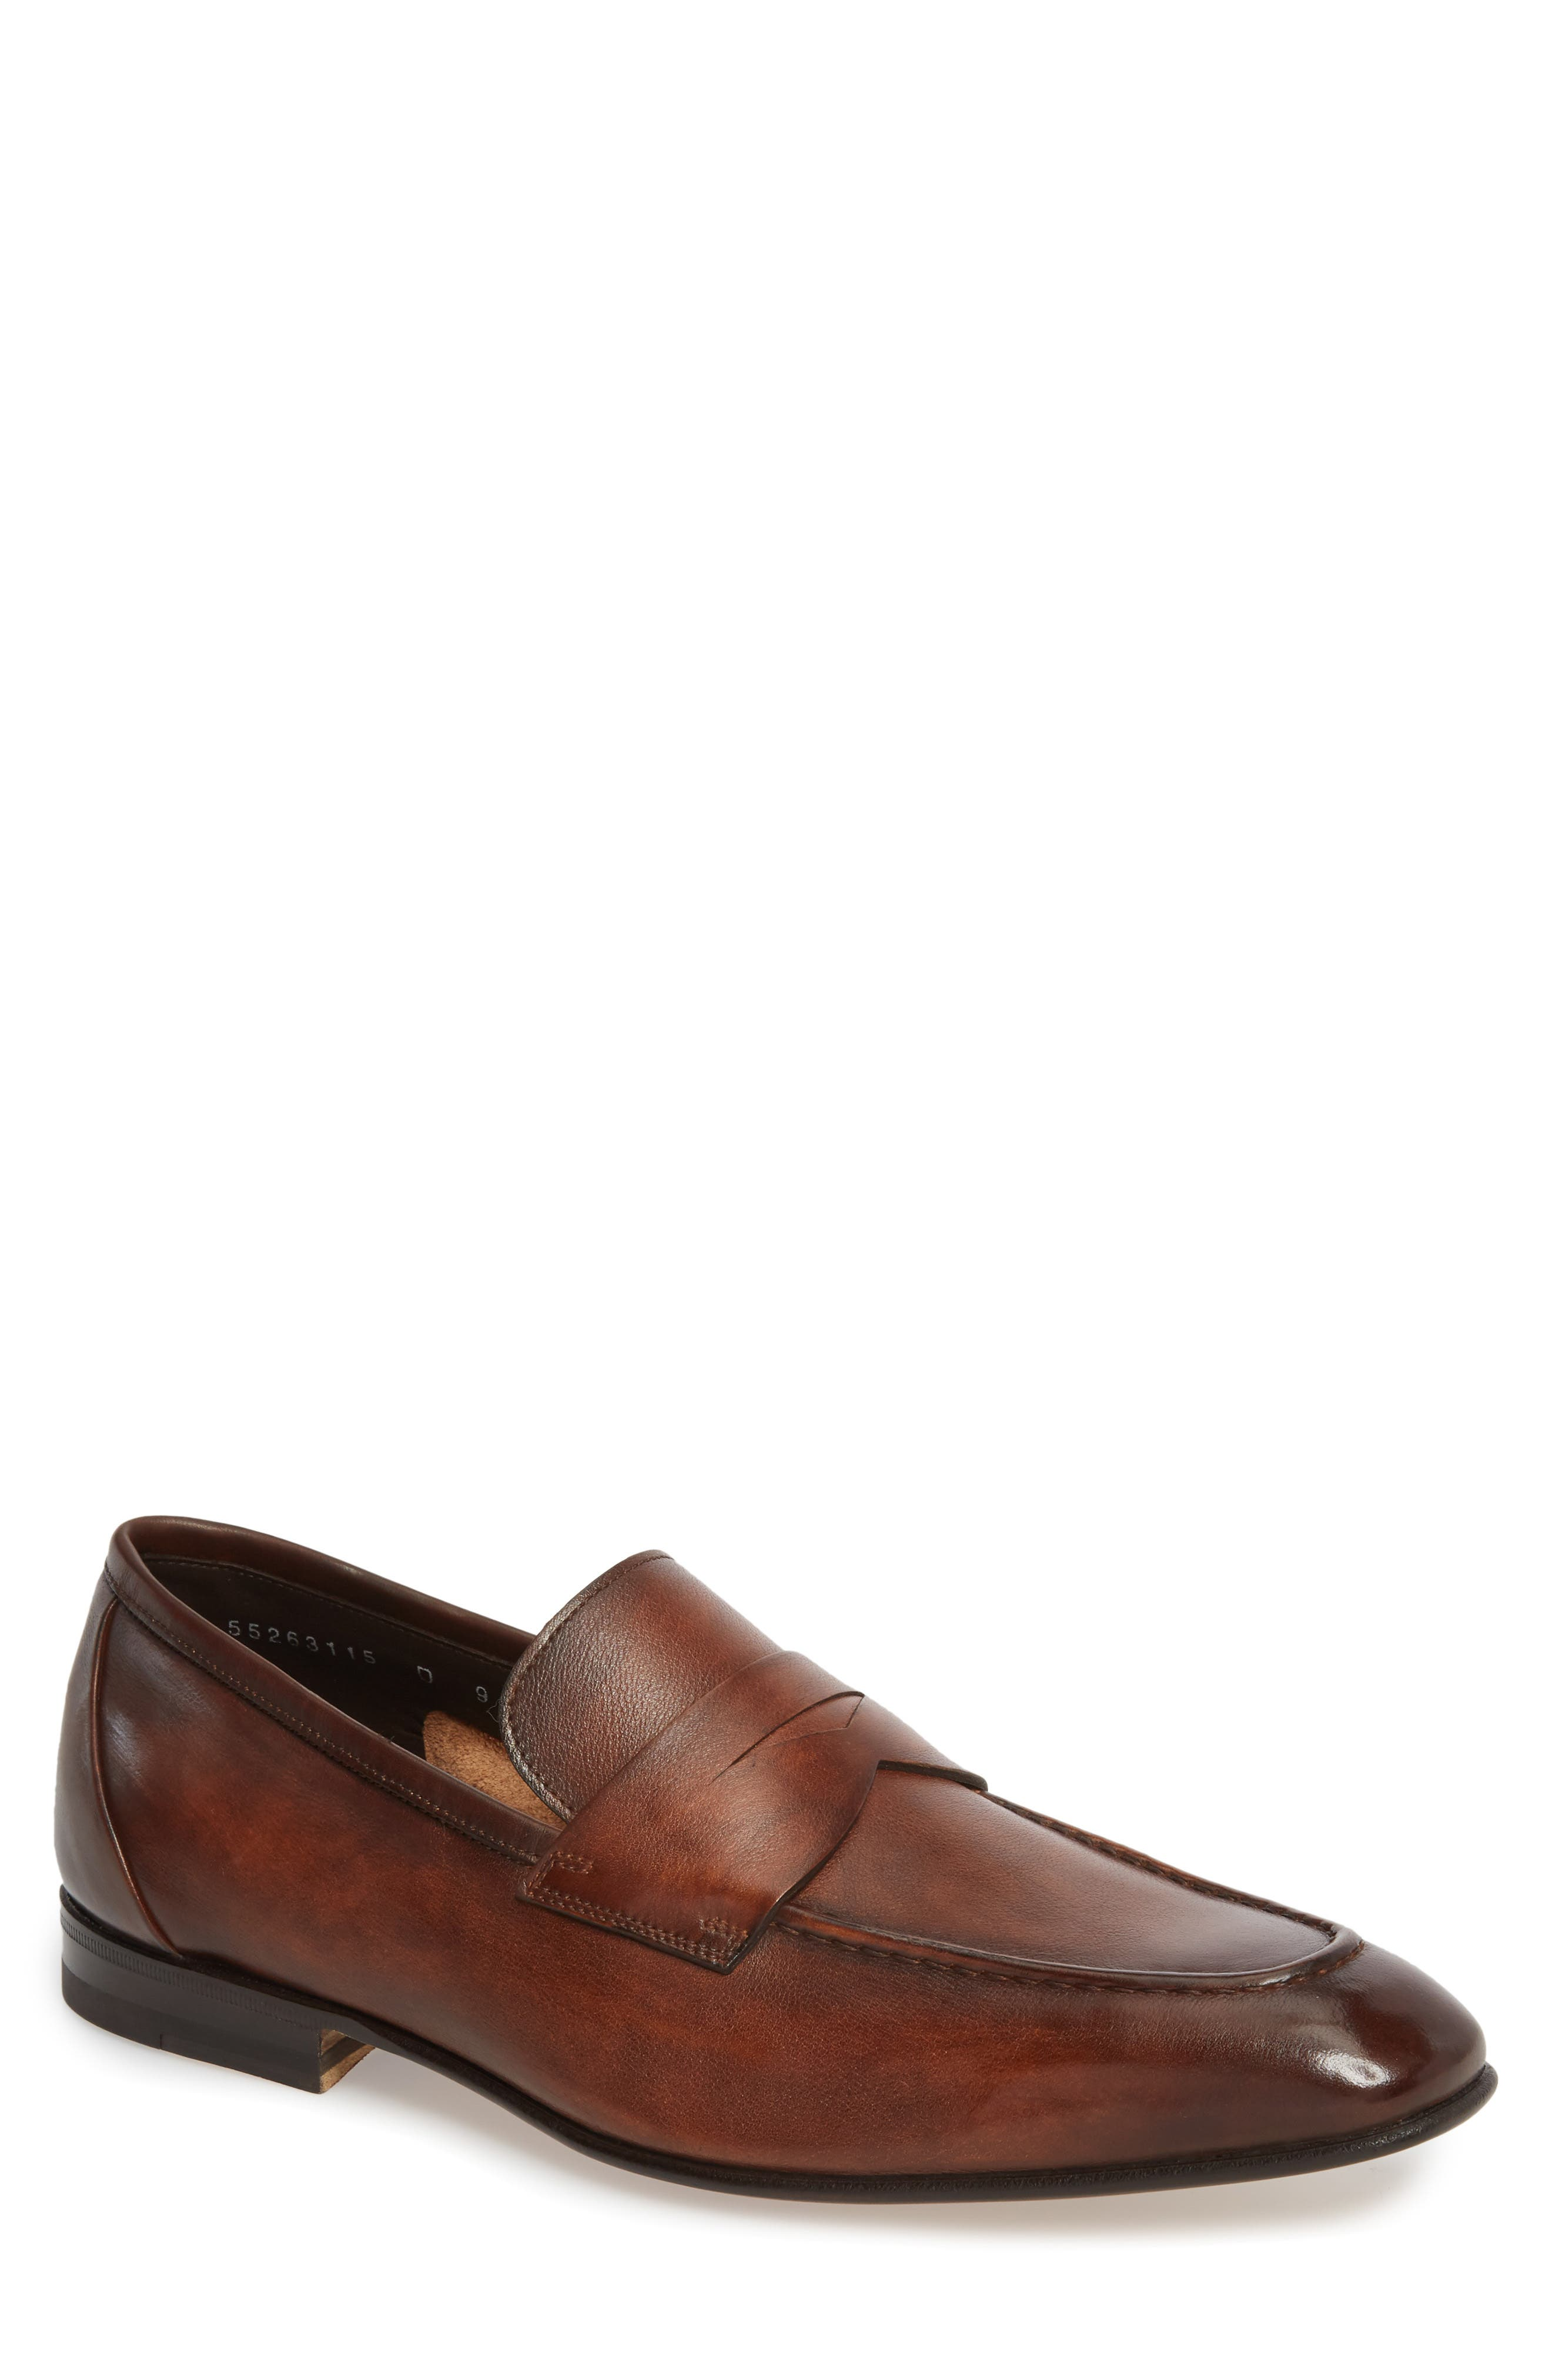 Gannon Penny Loafer,                         Main,                         color, TAN